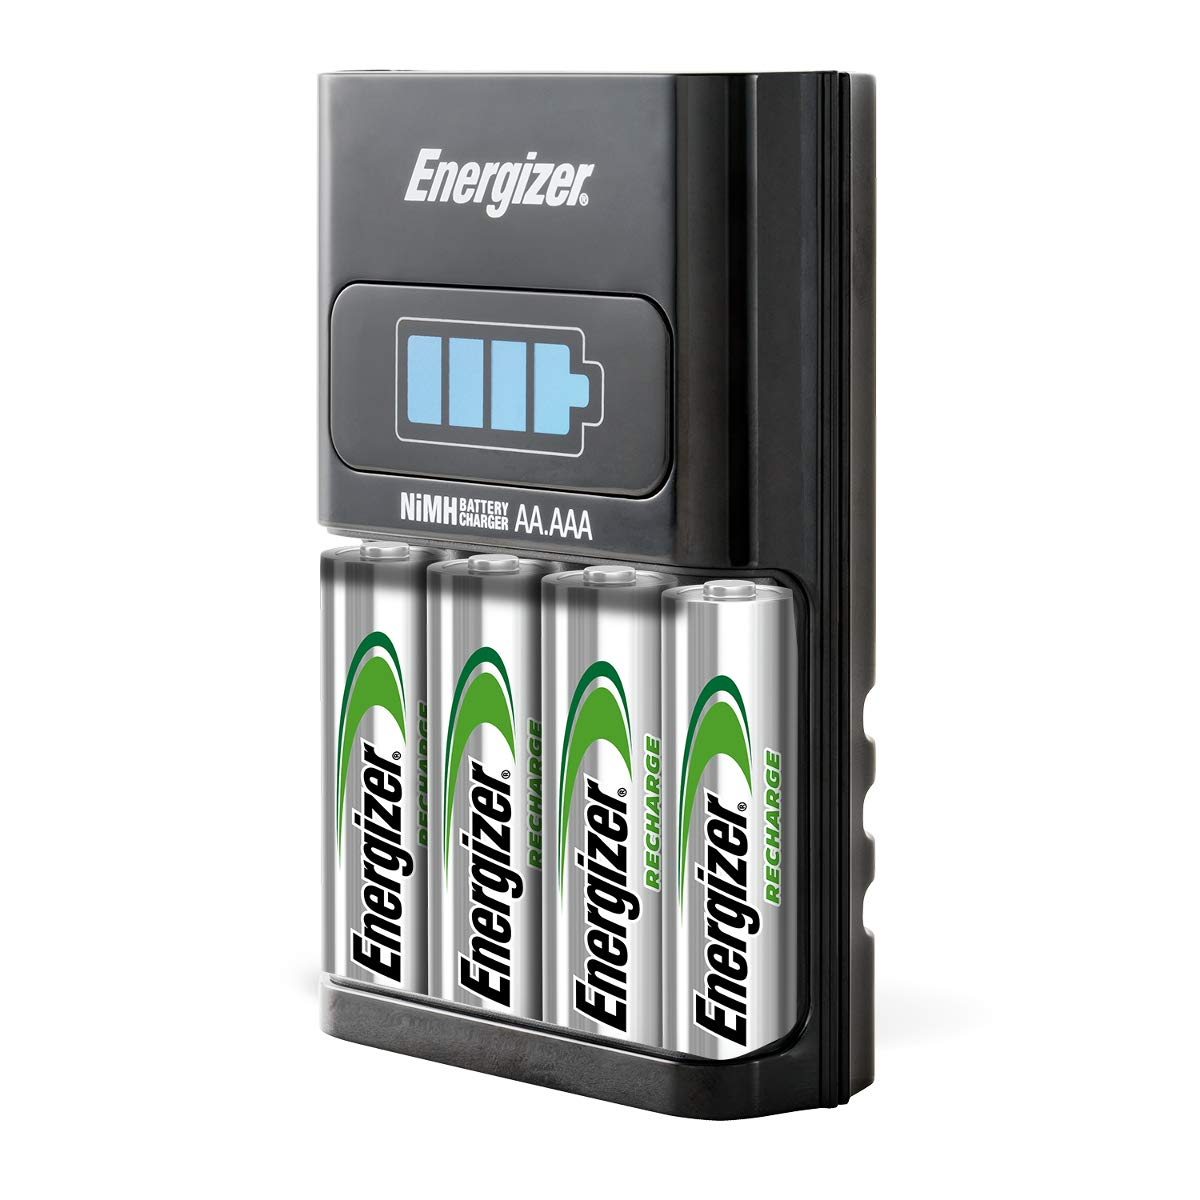 Energizer AA/AAA 1 Hour Charger with 4 AA NiMH